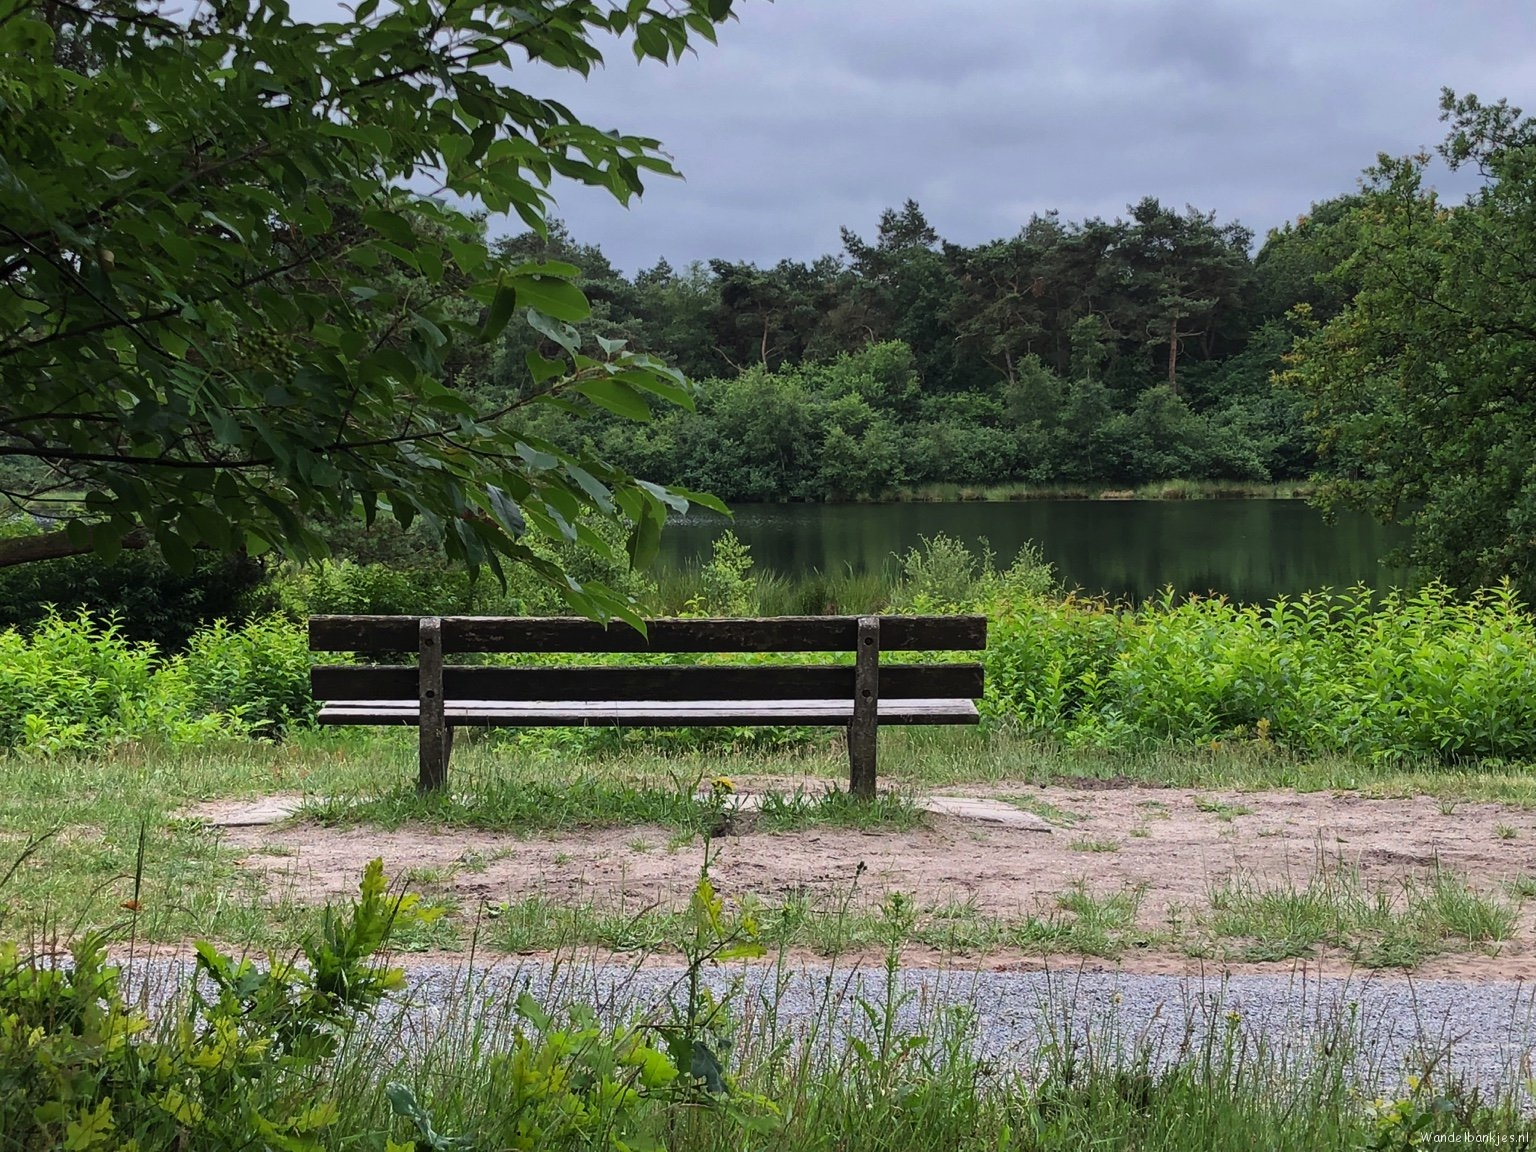 rt-gertientje-dit-wandelbankje-benches-a-very-nice-place-in-uffelte-drenthe-https-t-co-aanipowqyi